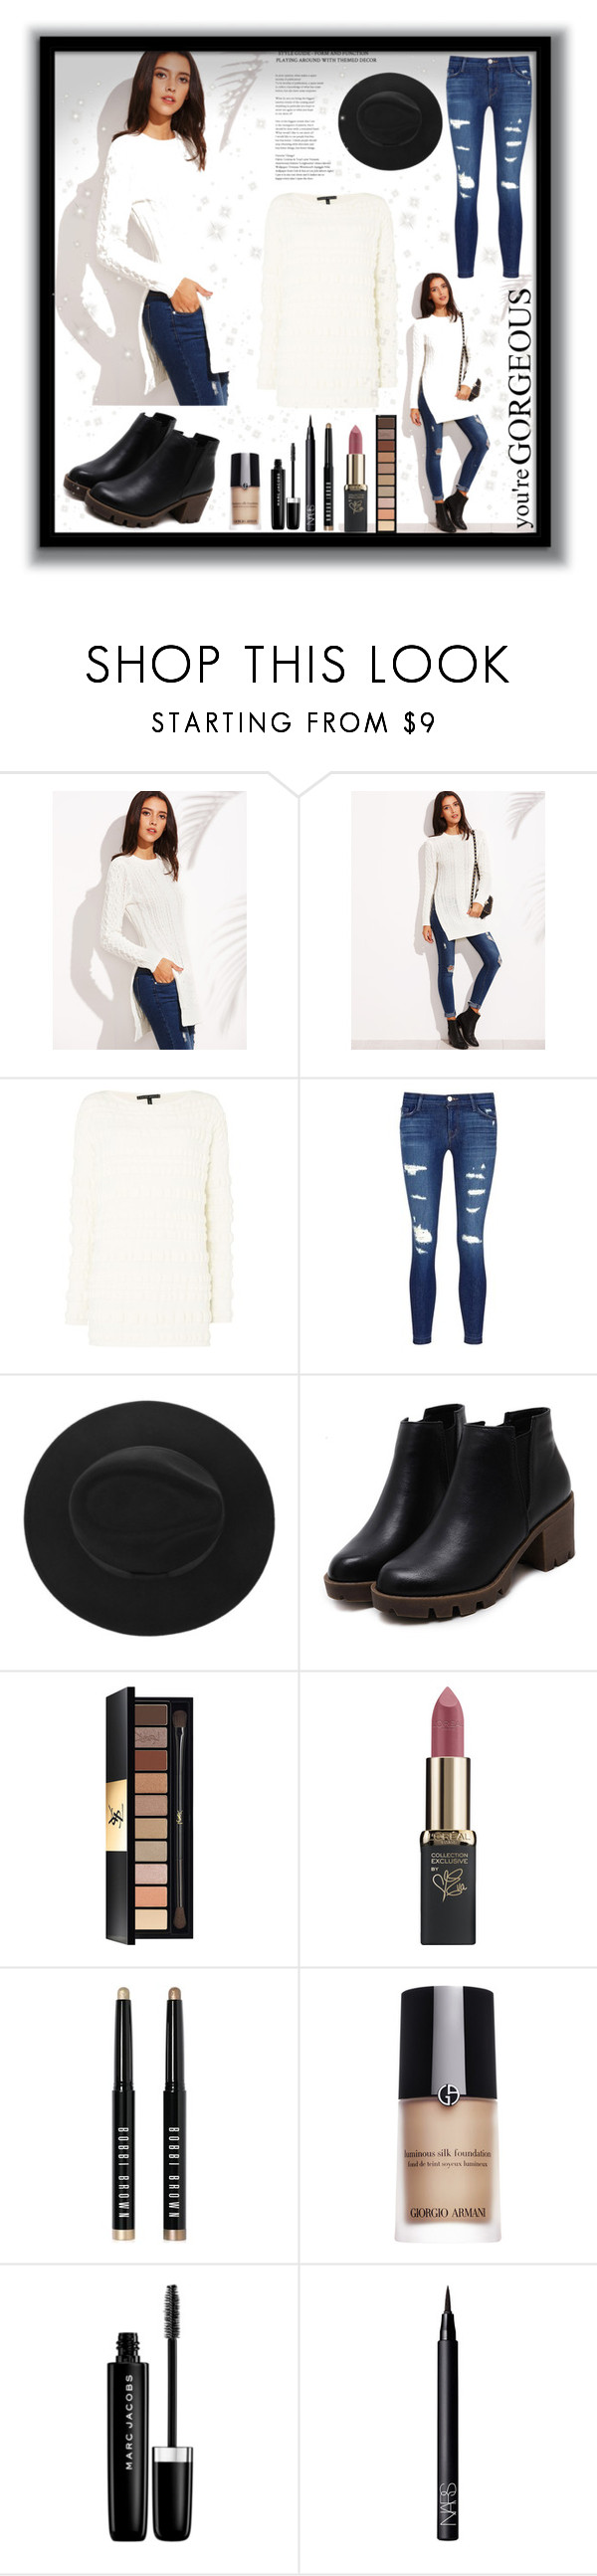 """""""Your beautiful"""" by krystalkm-7 ❤ liked on Polyvore featuring Sarah Pacini, J Brand, Yves Saint Laurent, L'Oréal Paris, Bobbi Brown Cosmetics, Giorgio Armani, Marc Jacobs and NARS Cosmetics"""